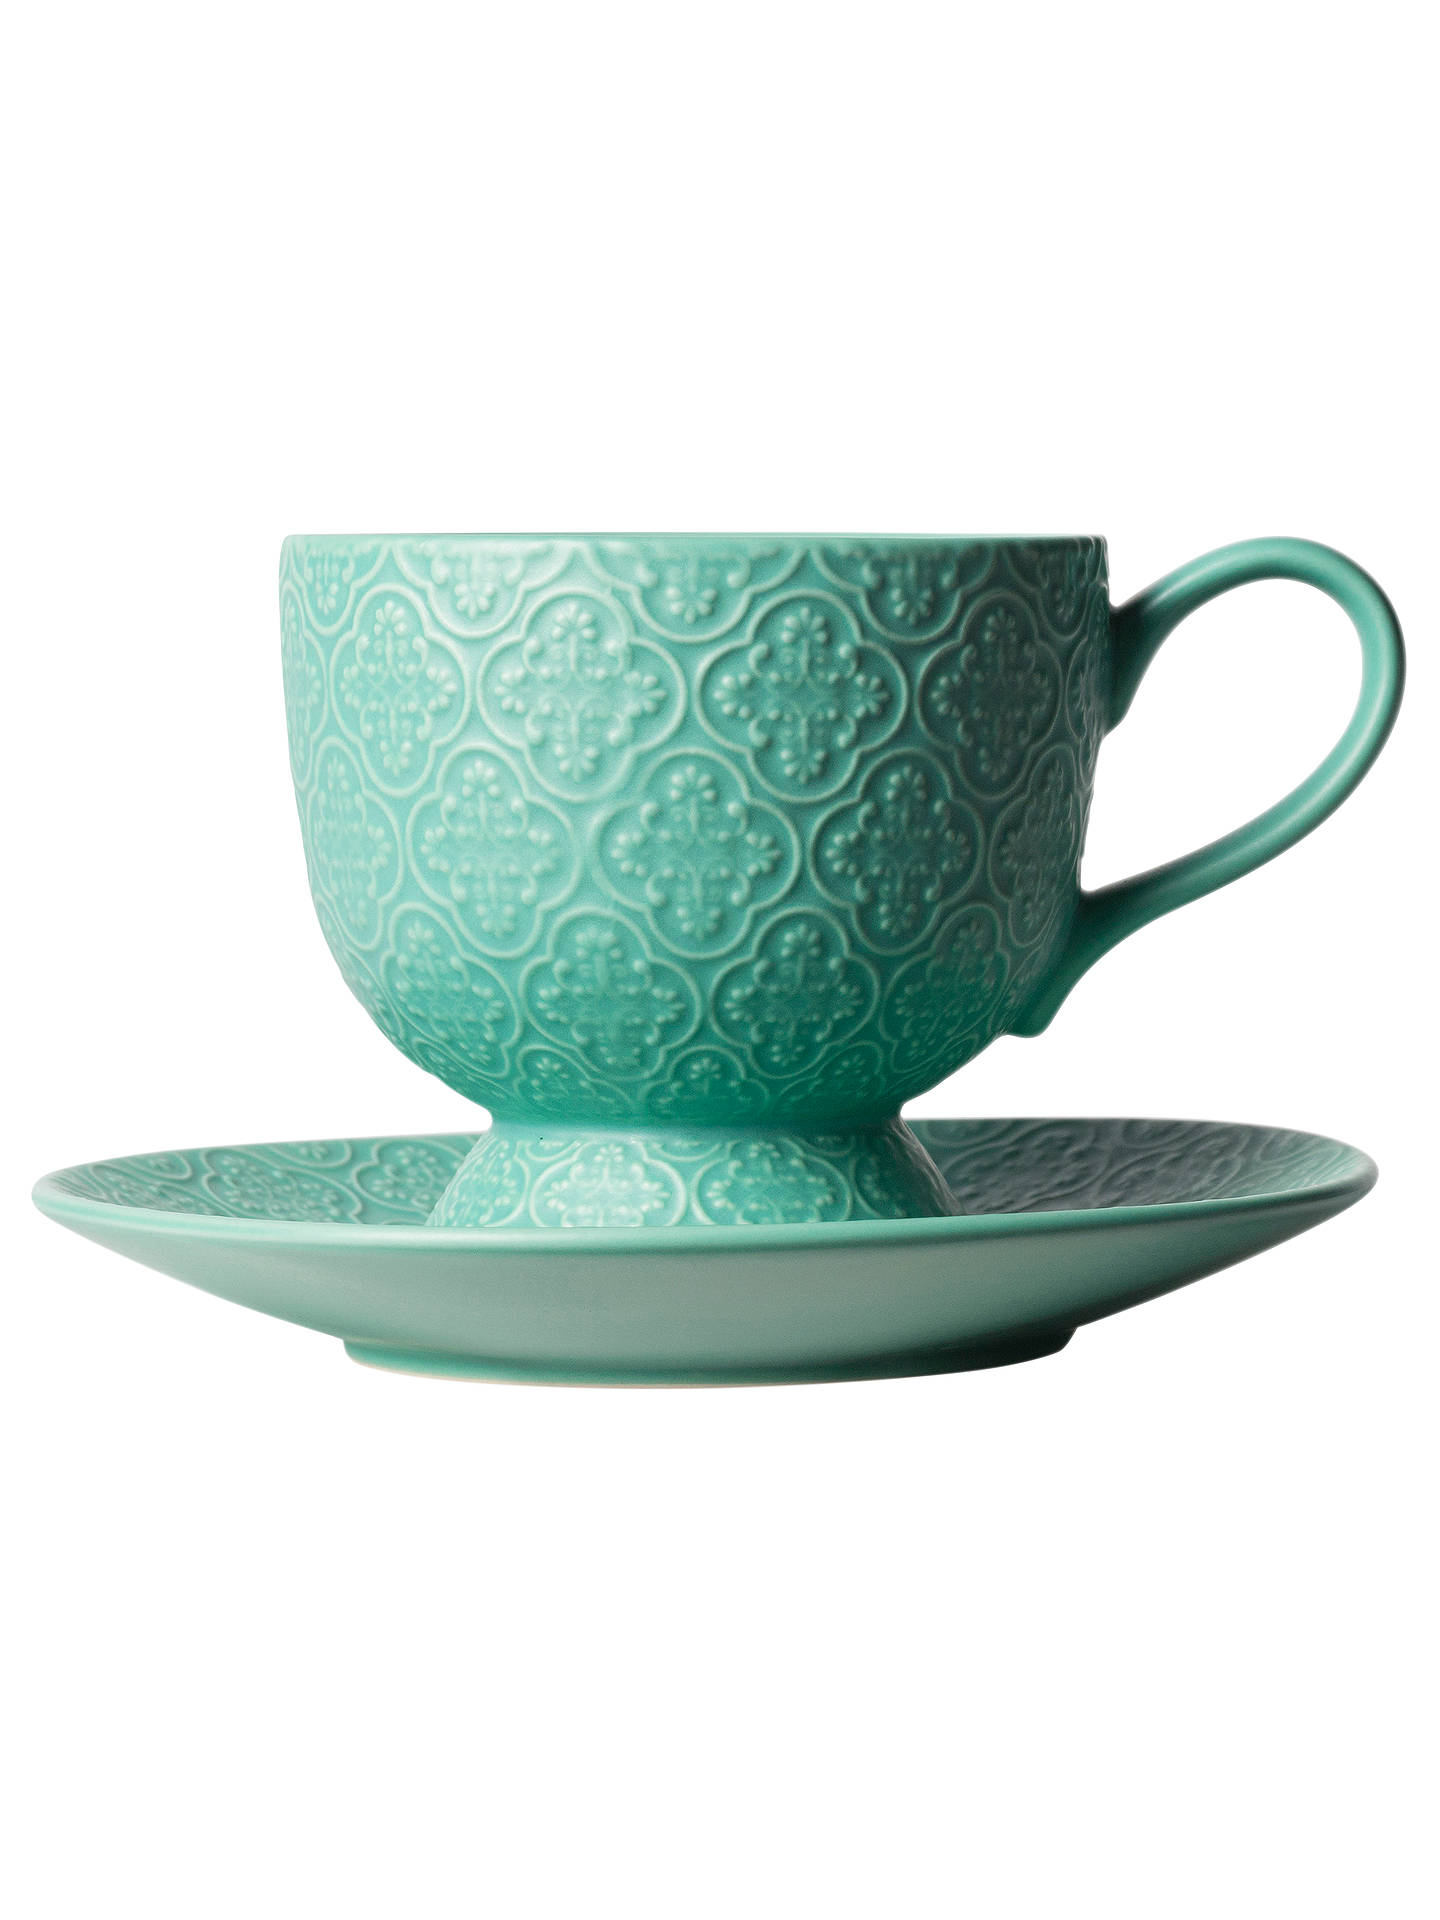 BuyT2 Lotus Pocus Tea Cup and Saucer, Aqua, 300ml Online at johnlewis.com